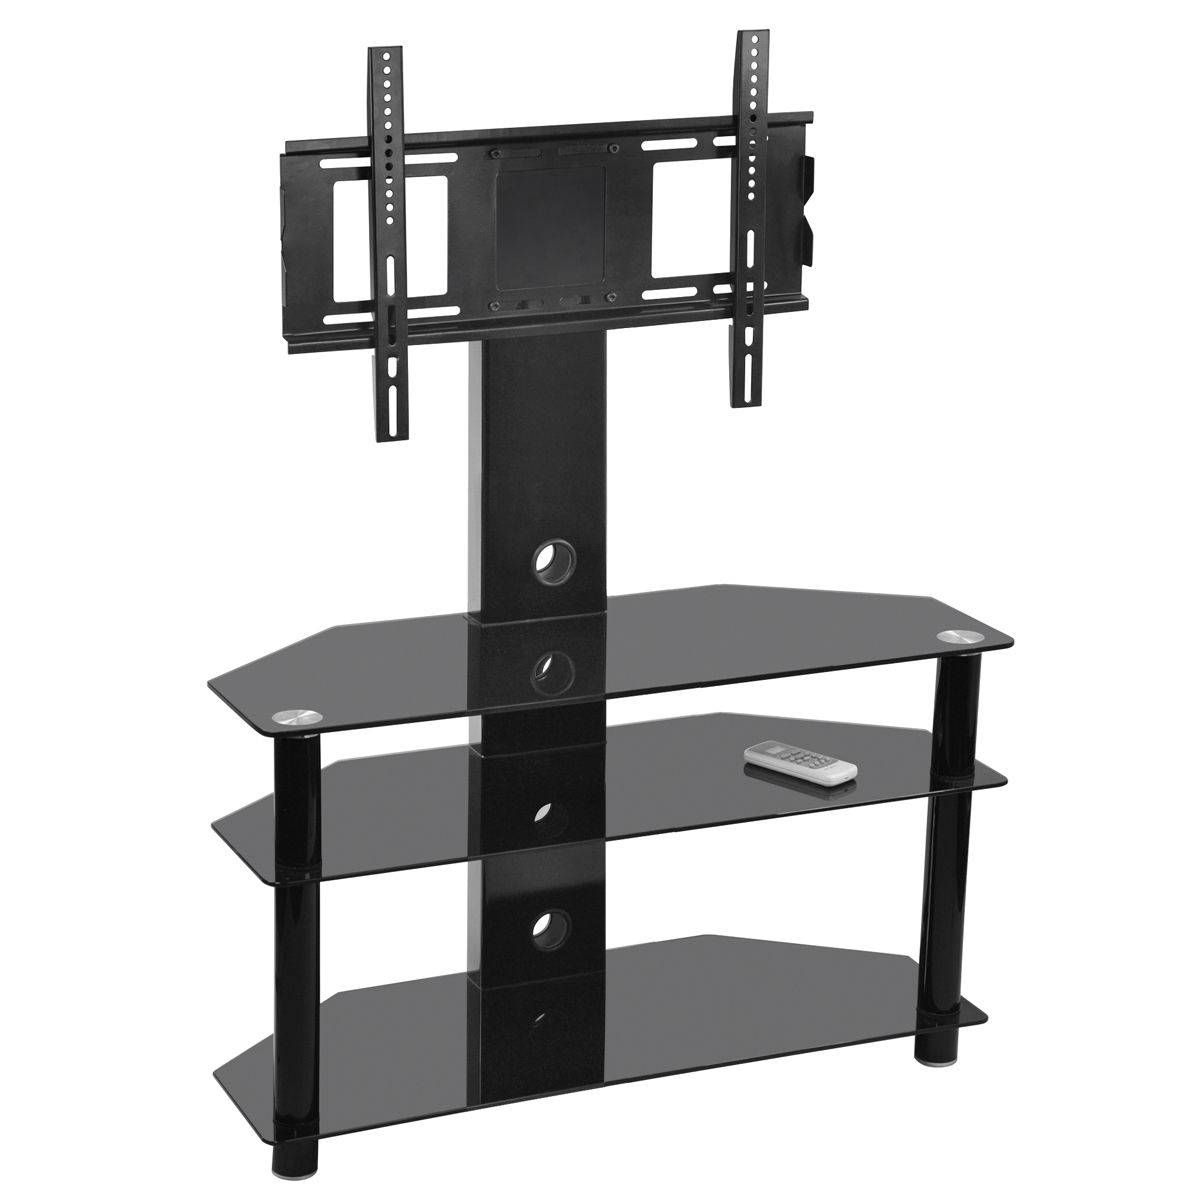 50 Inch Tv Stand | Televisions | Ebay regarding Oval Glass Tv Stands (Image 1 of 15)